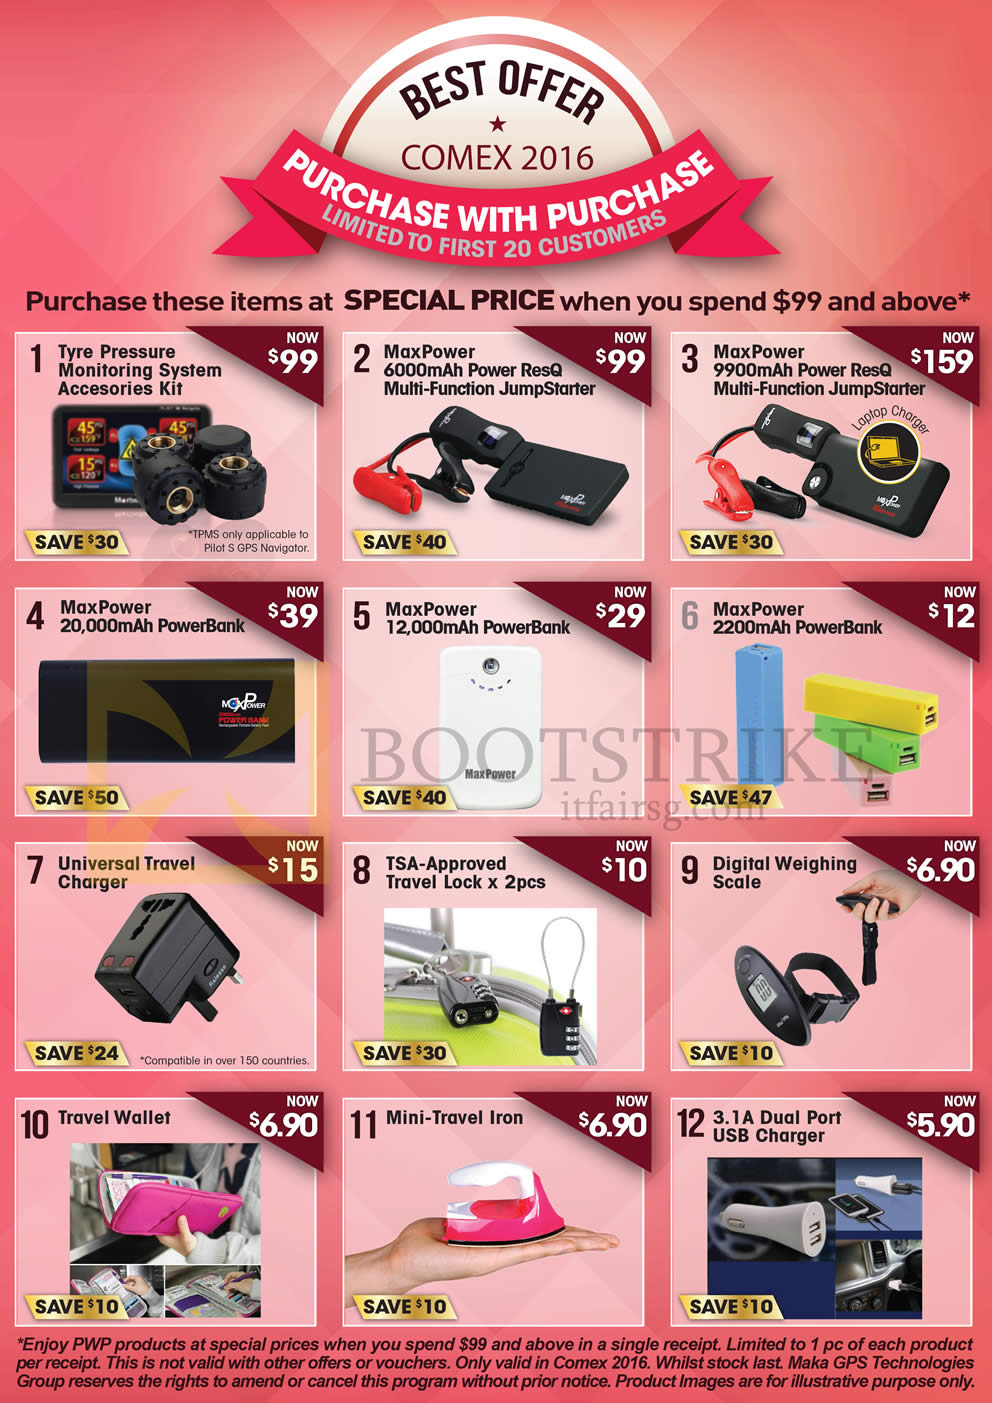 COMEX 2016 price list image brochure of Maka GPS Marbella Purchase With Purchase Monitoring System, Jump Starter, Powerbanks, Travel Lock, Digital Weighing Scale, Travel Iron, Wallet, USB Charger